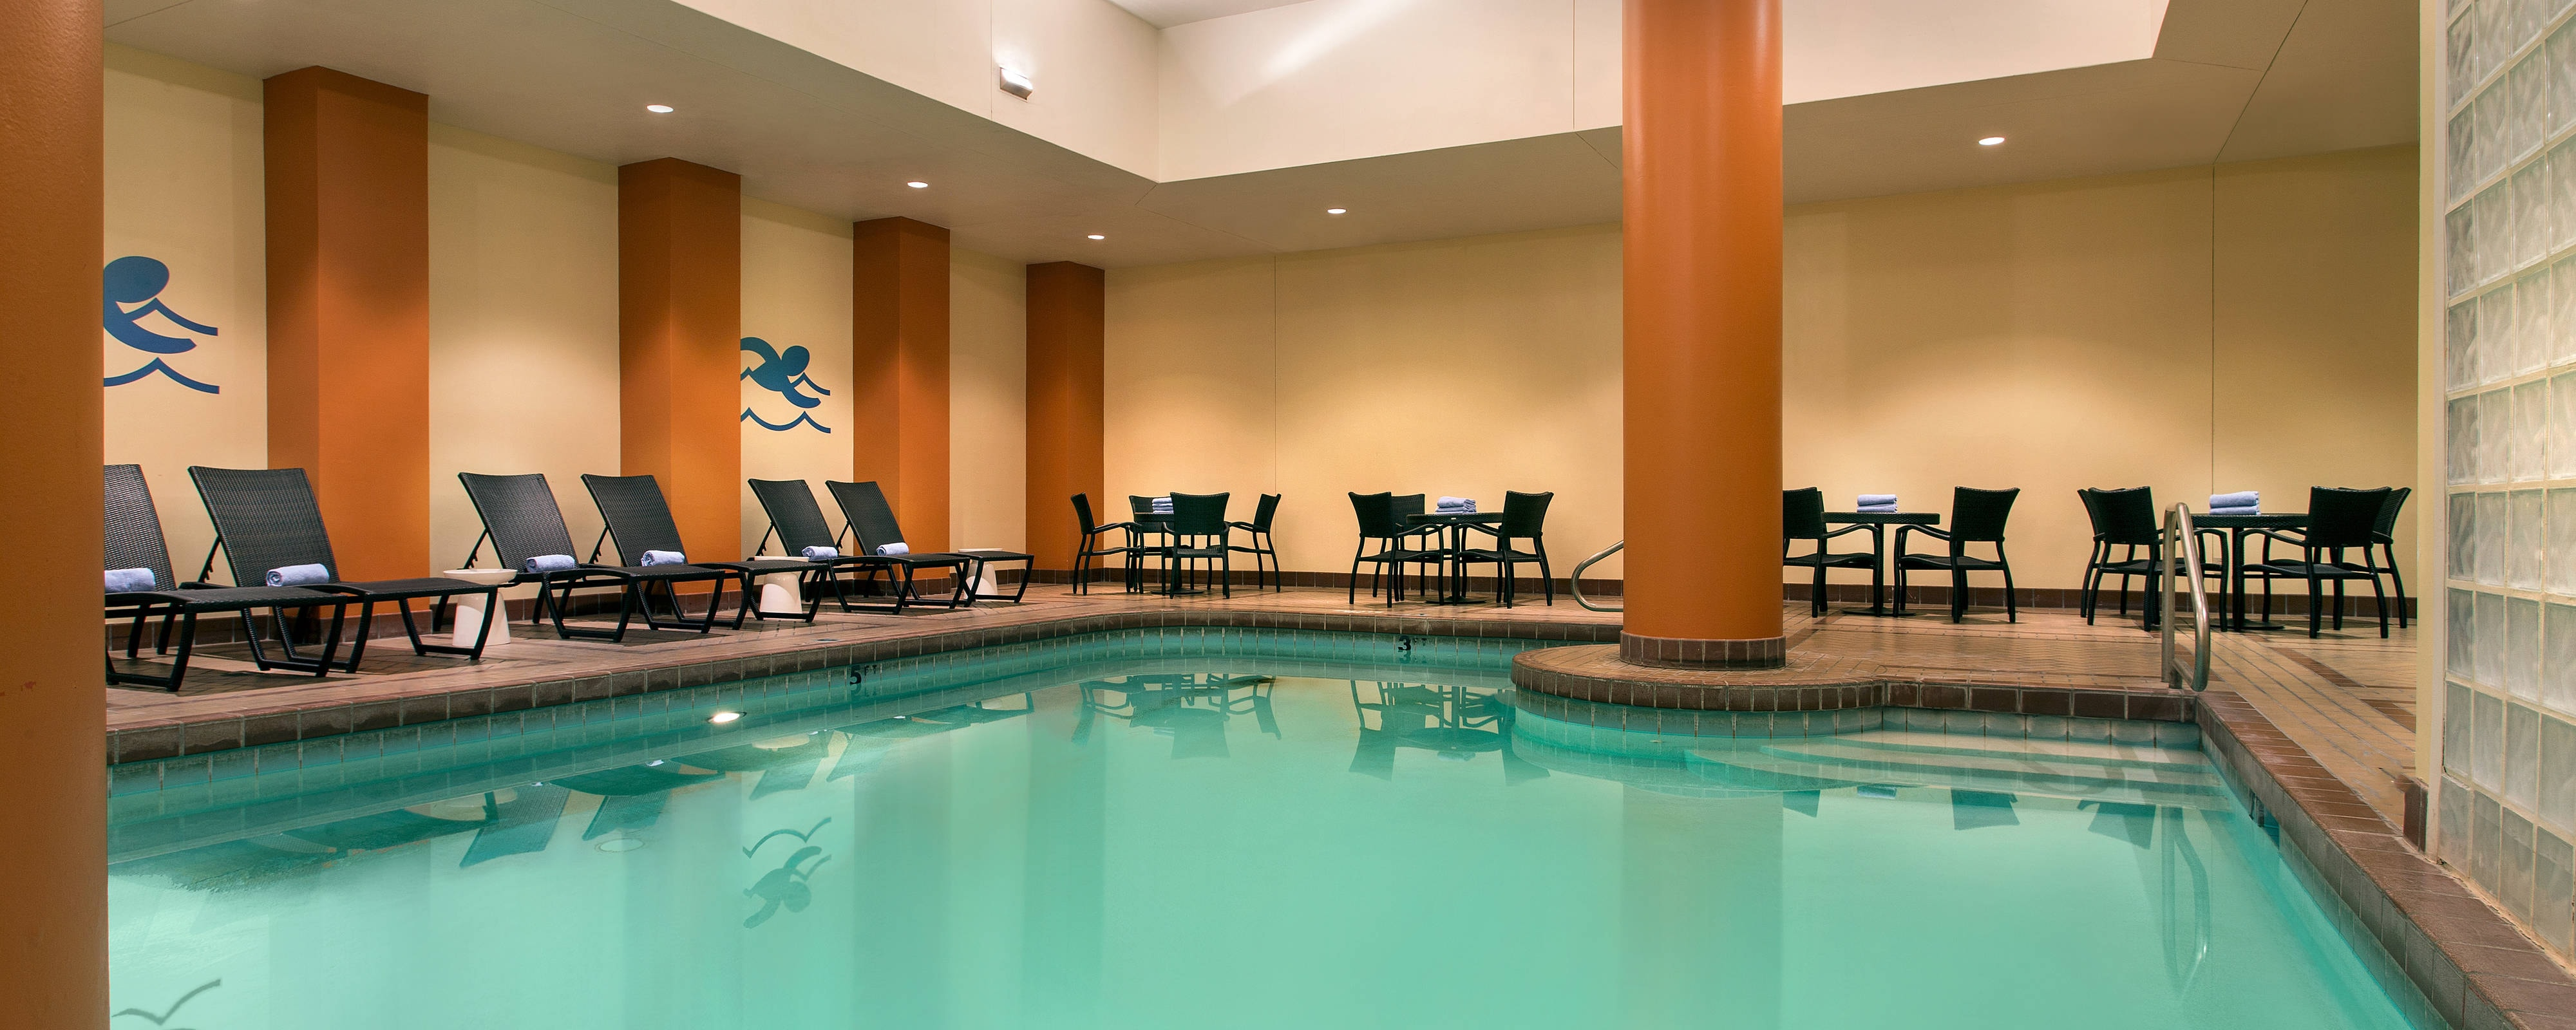 Hotel Lincoln Downtown Lincoln Hotels With Pool Gym The Lincoln Marriott